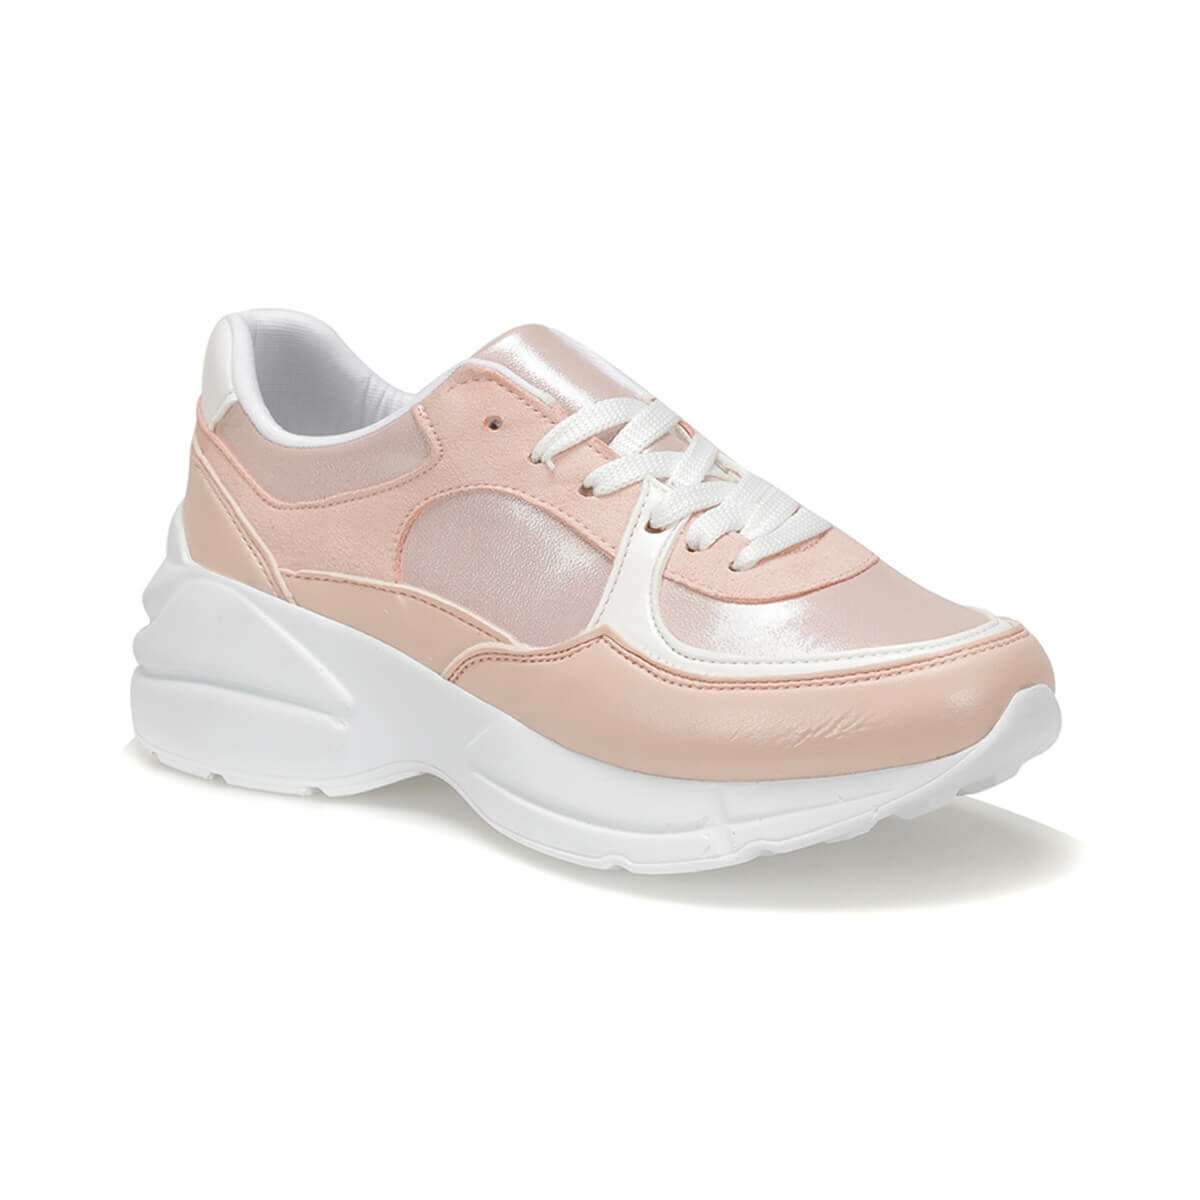 FLO REYN04Z SKIN Powder Women 'S Sneaker Shoes BUTIGO